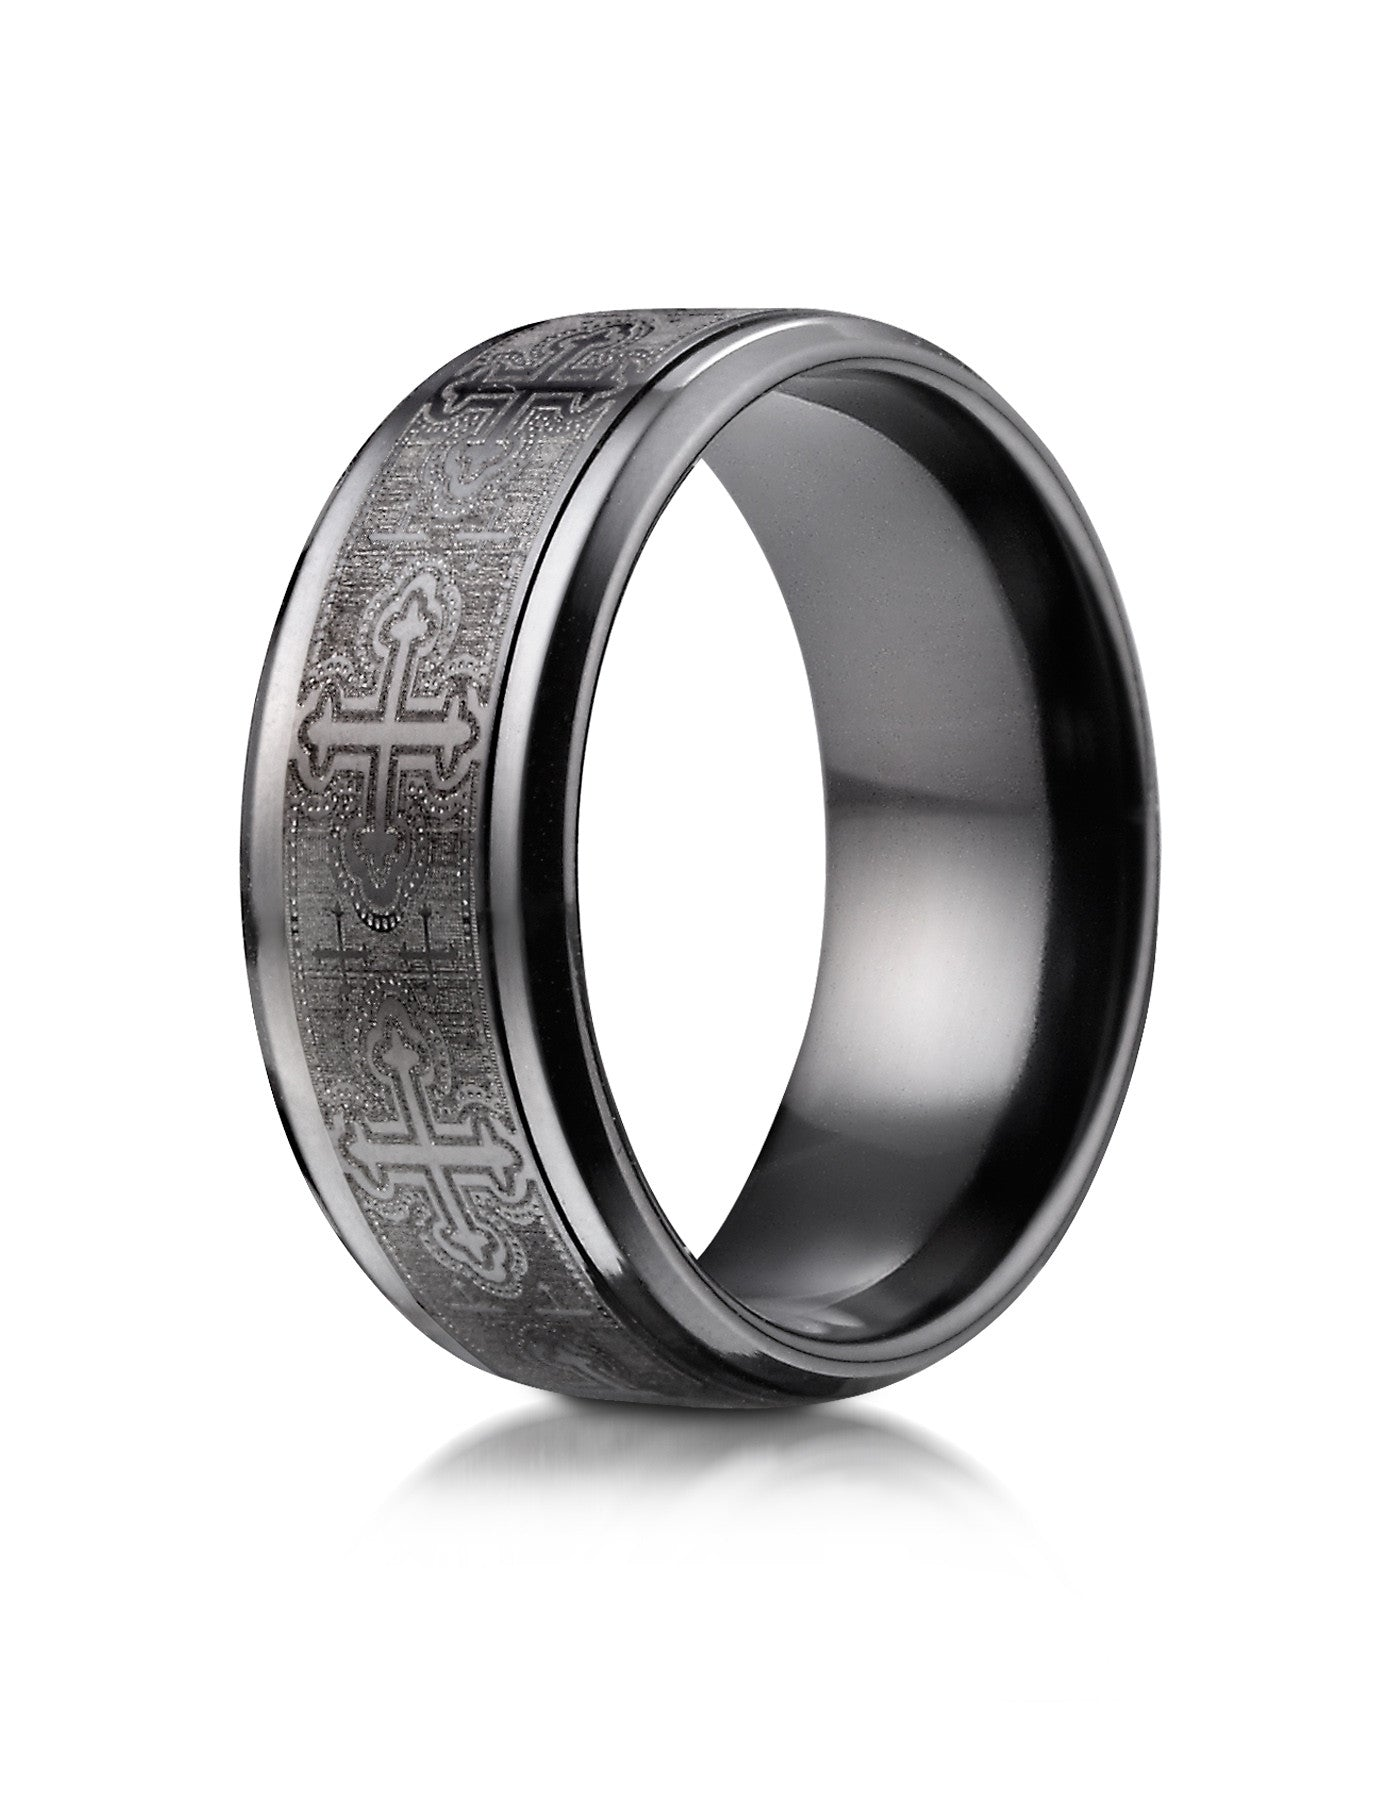 PORTO Men s Black Titanium Cathedral Cross Wedding BandPORTO Men s Black Titanium Cathedral Cross Wedding Band   Wedding  . Mens Cross Wedding Band. Home Design Ideas